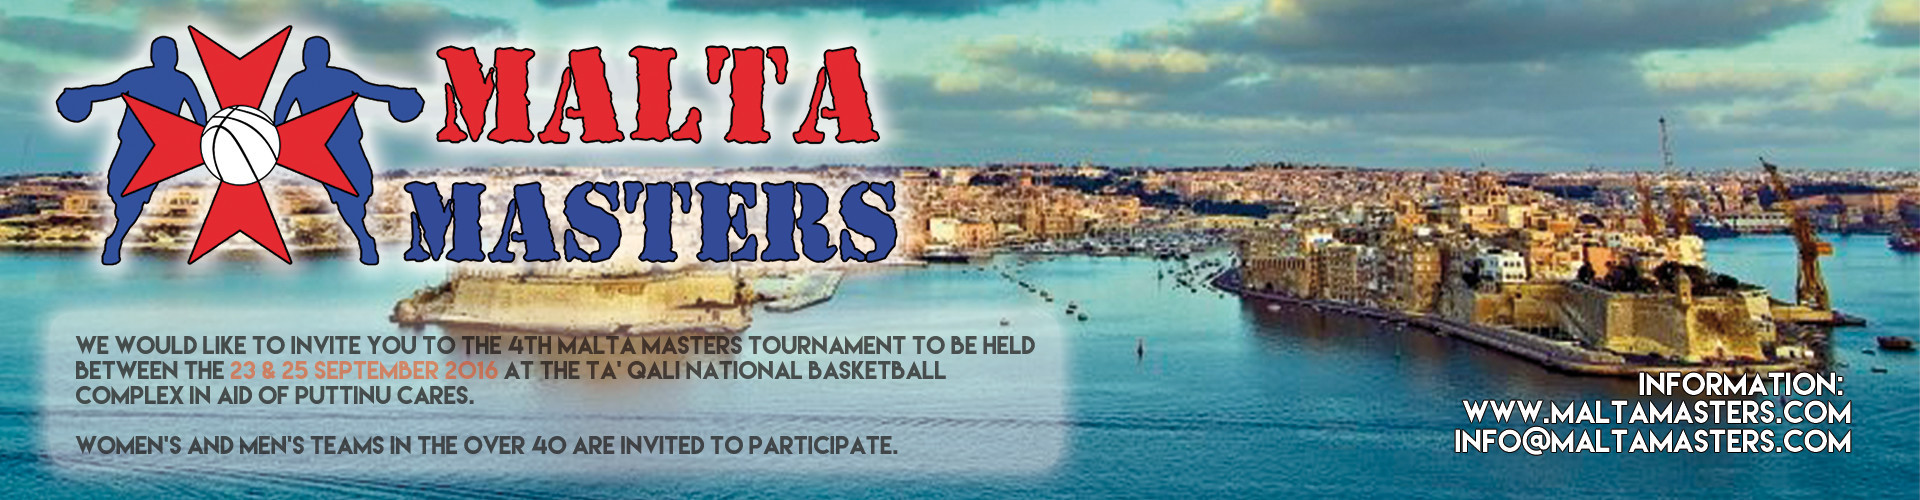 4th Malta Masters Tournament